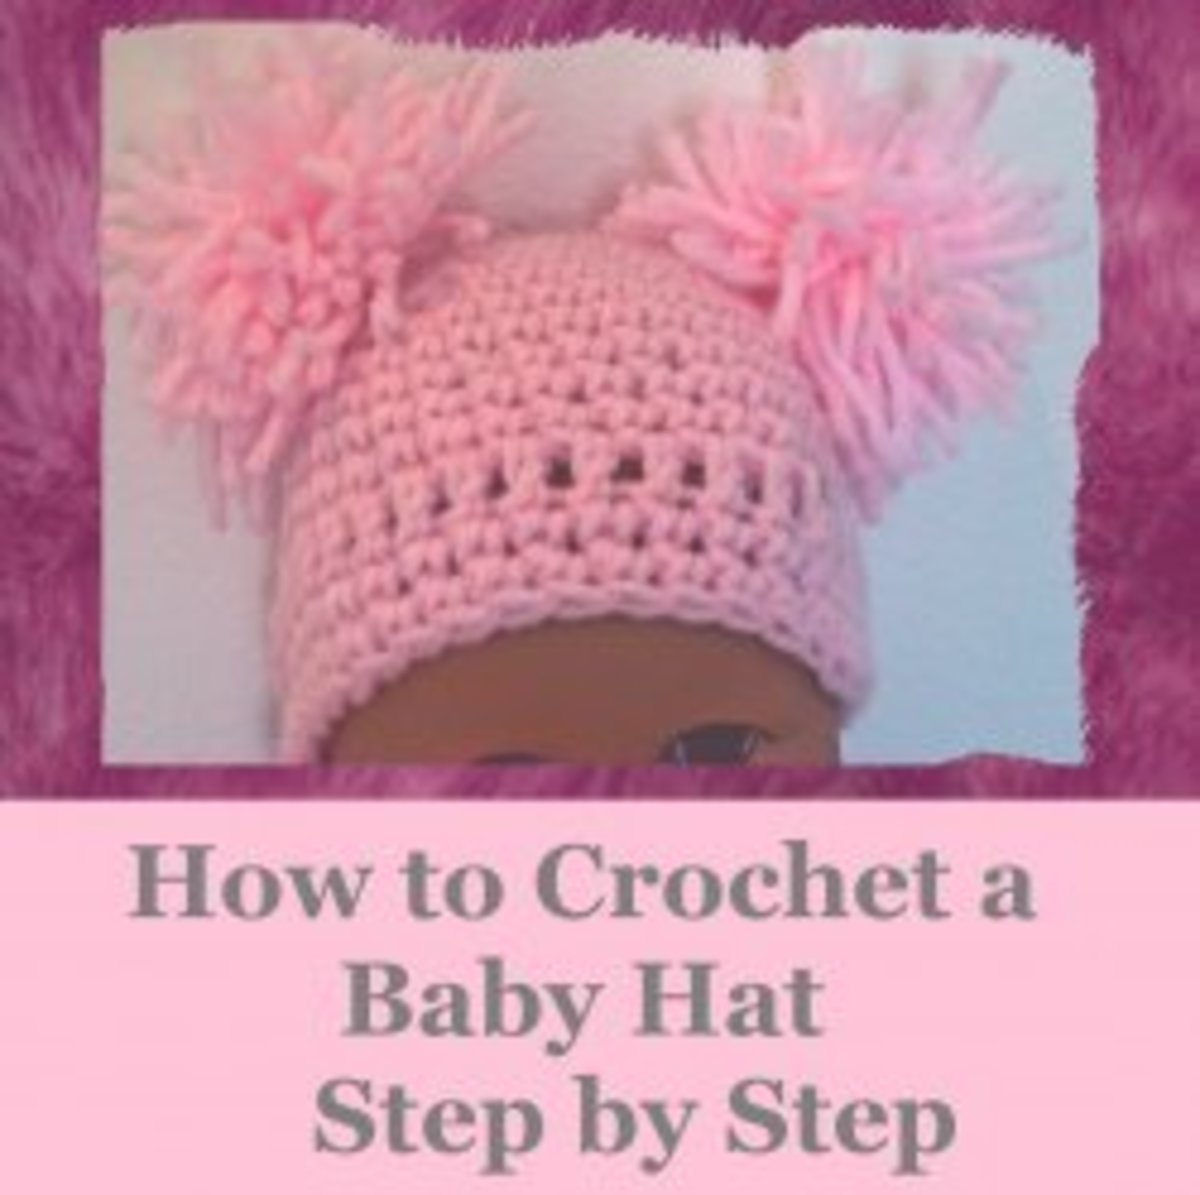 Crochet Baby Hat Tutorial Step By Step : How to Crochet a Baby Hat Ideal for Beginners (With Step ...